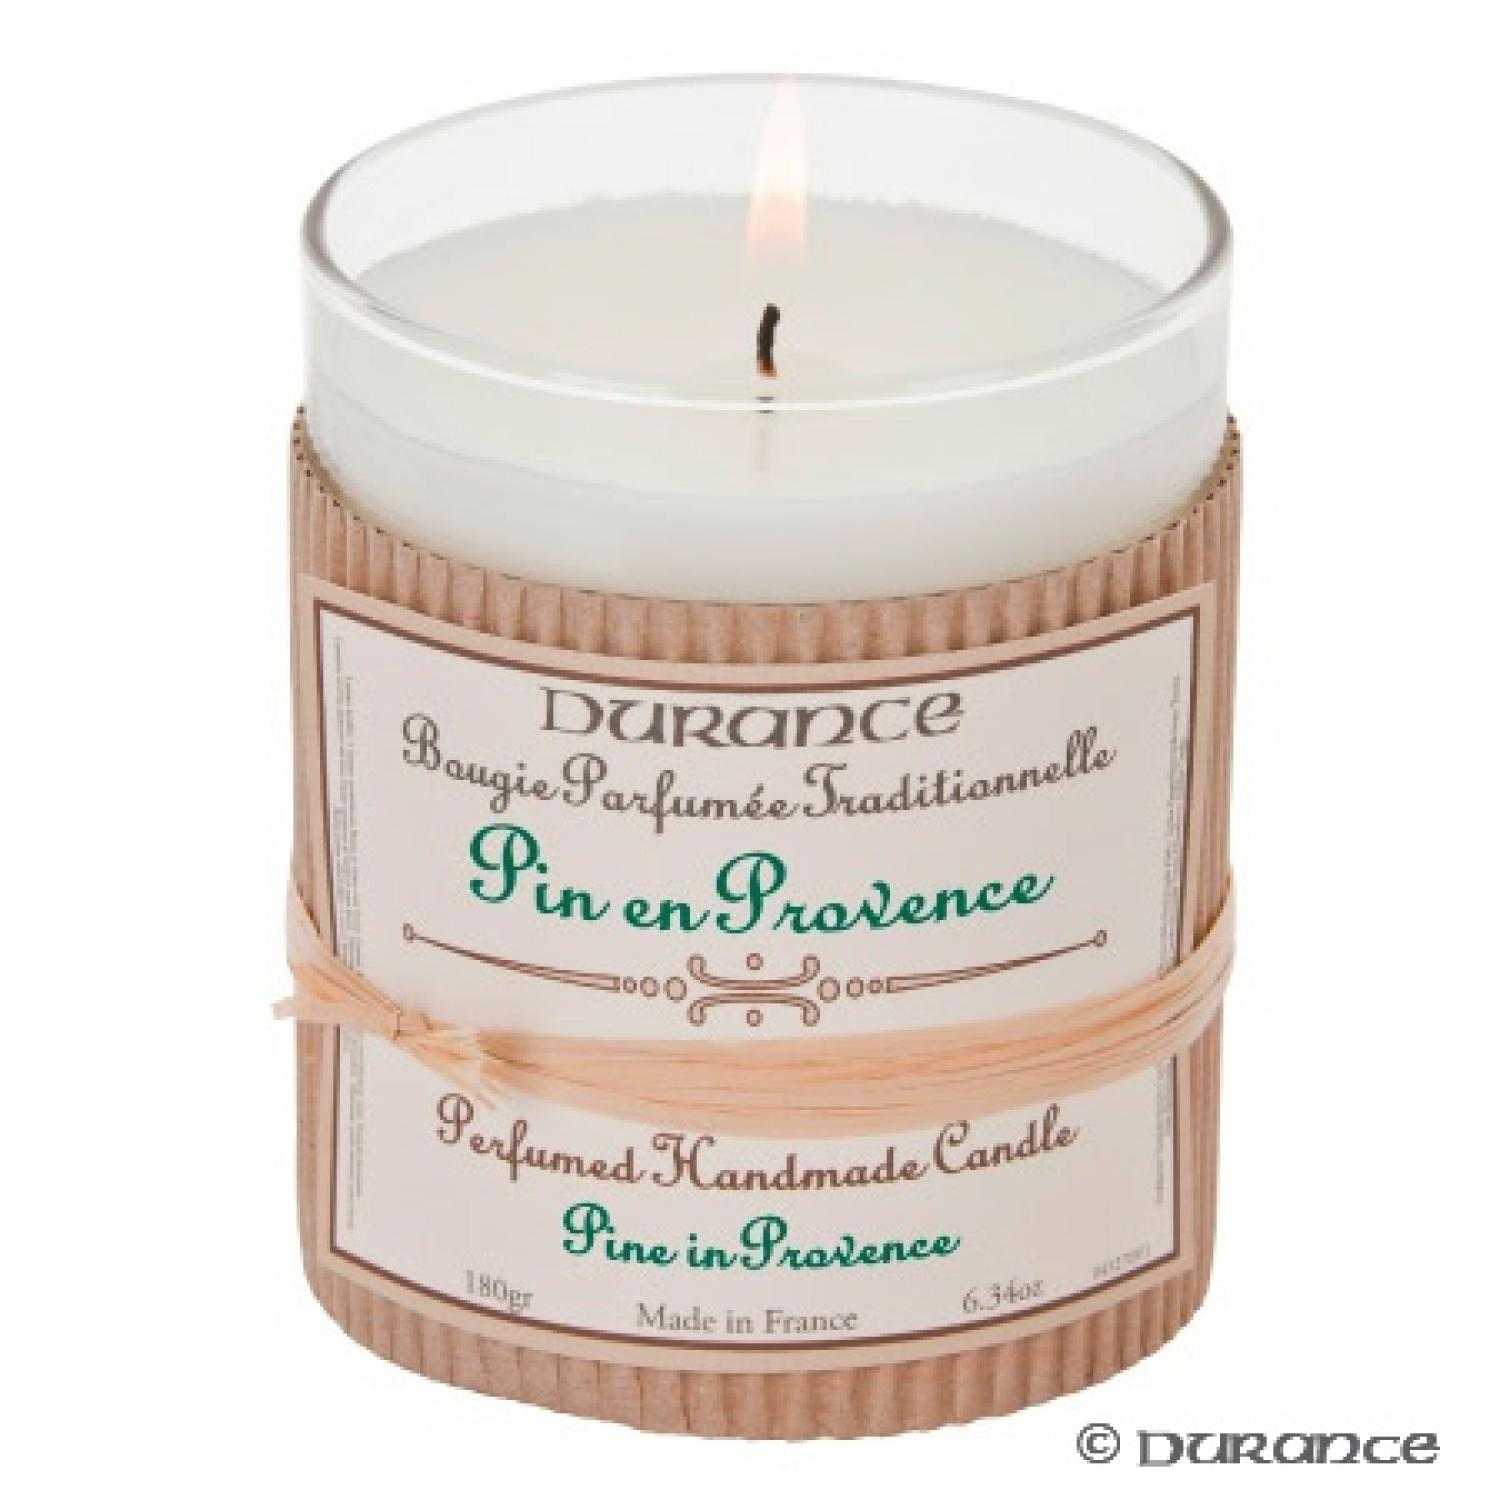 Scented Candle - Pine in Provence 180gr